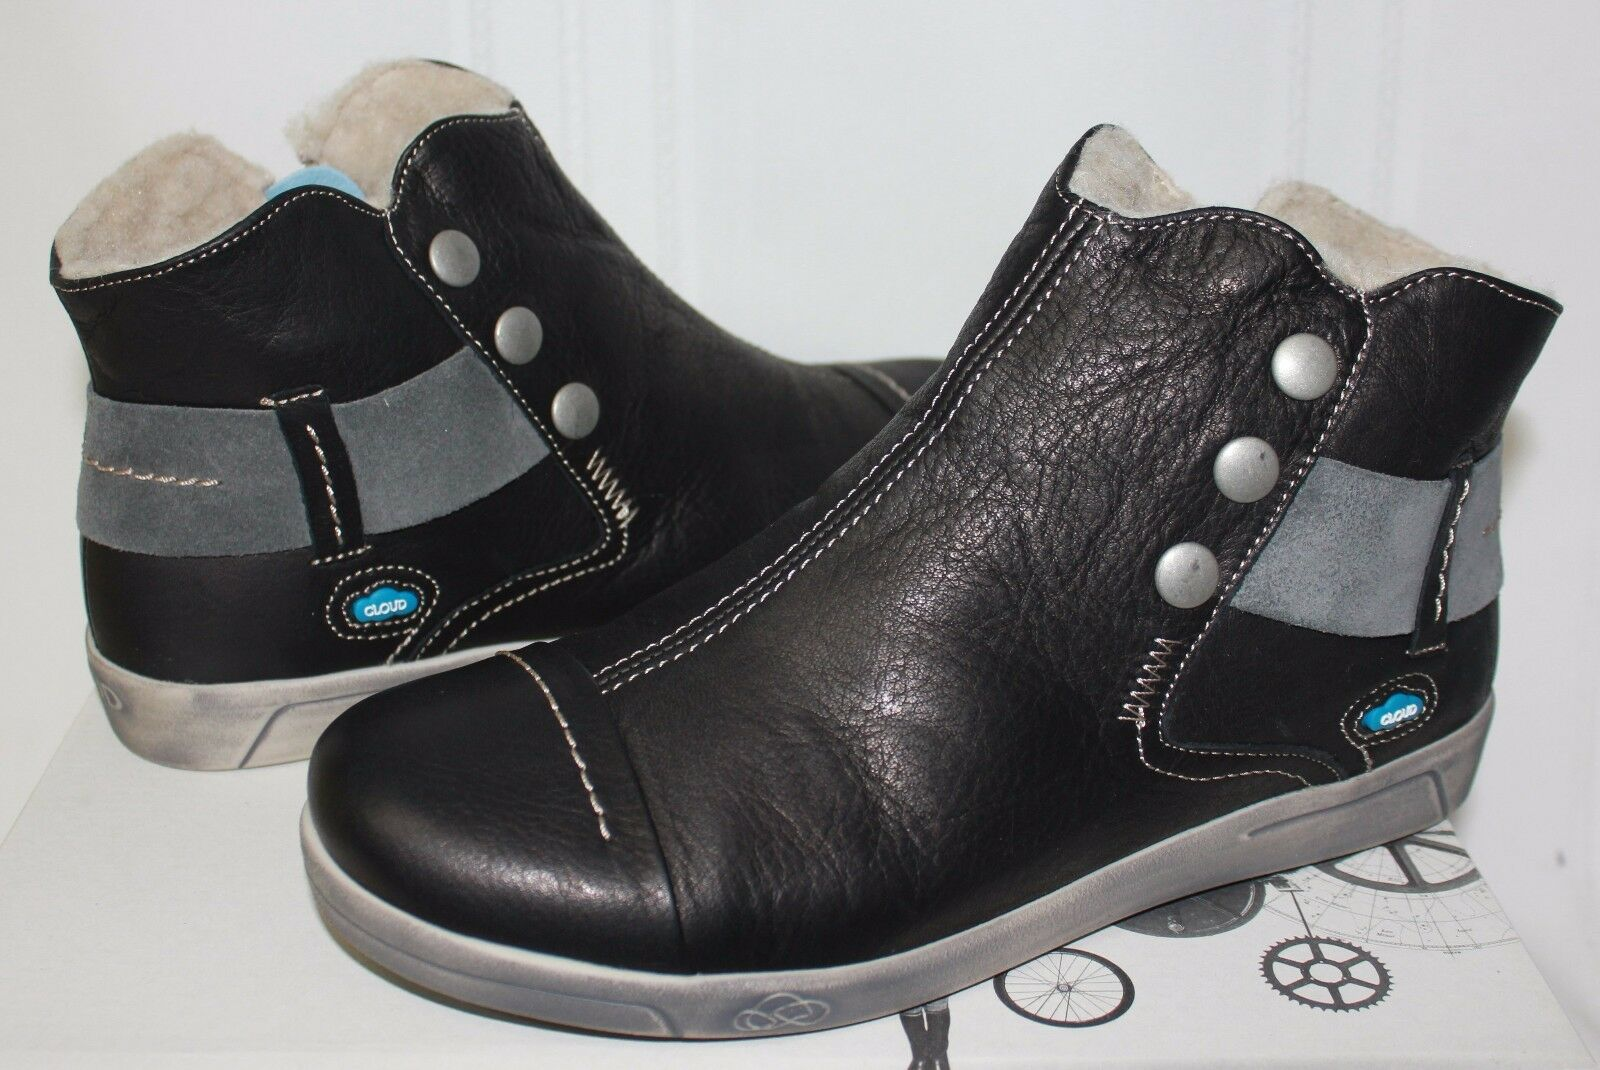 CLOUD Aline sneaker wool-line booties Black Leather NEW WITH BOX!